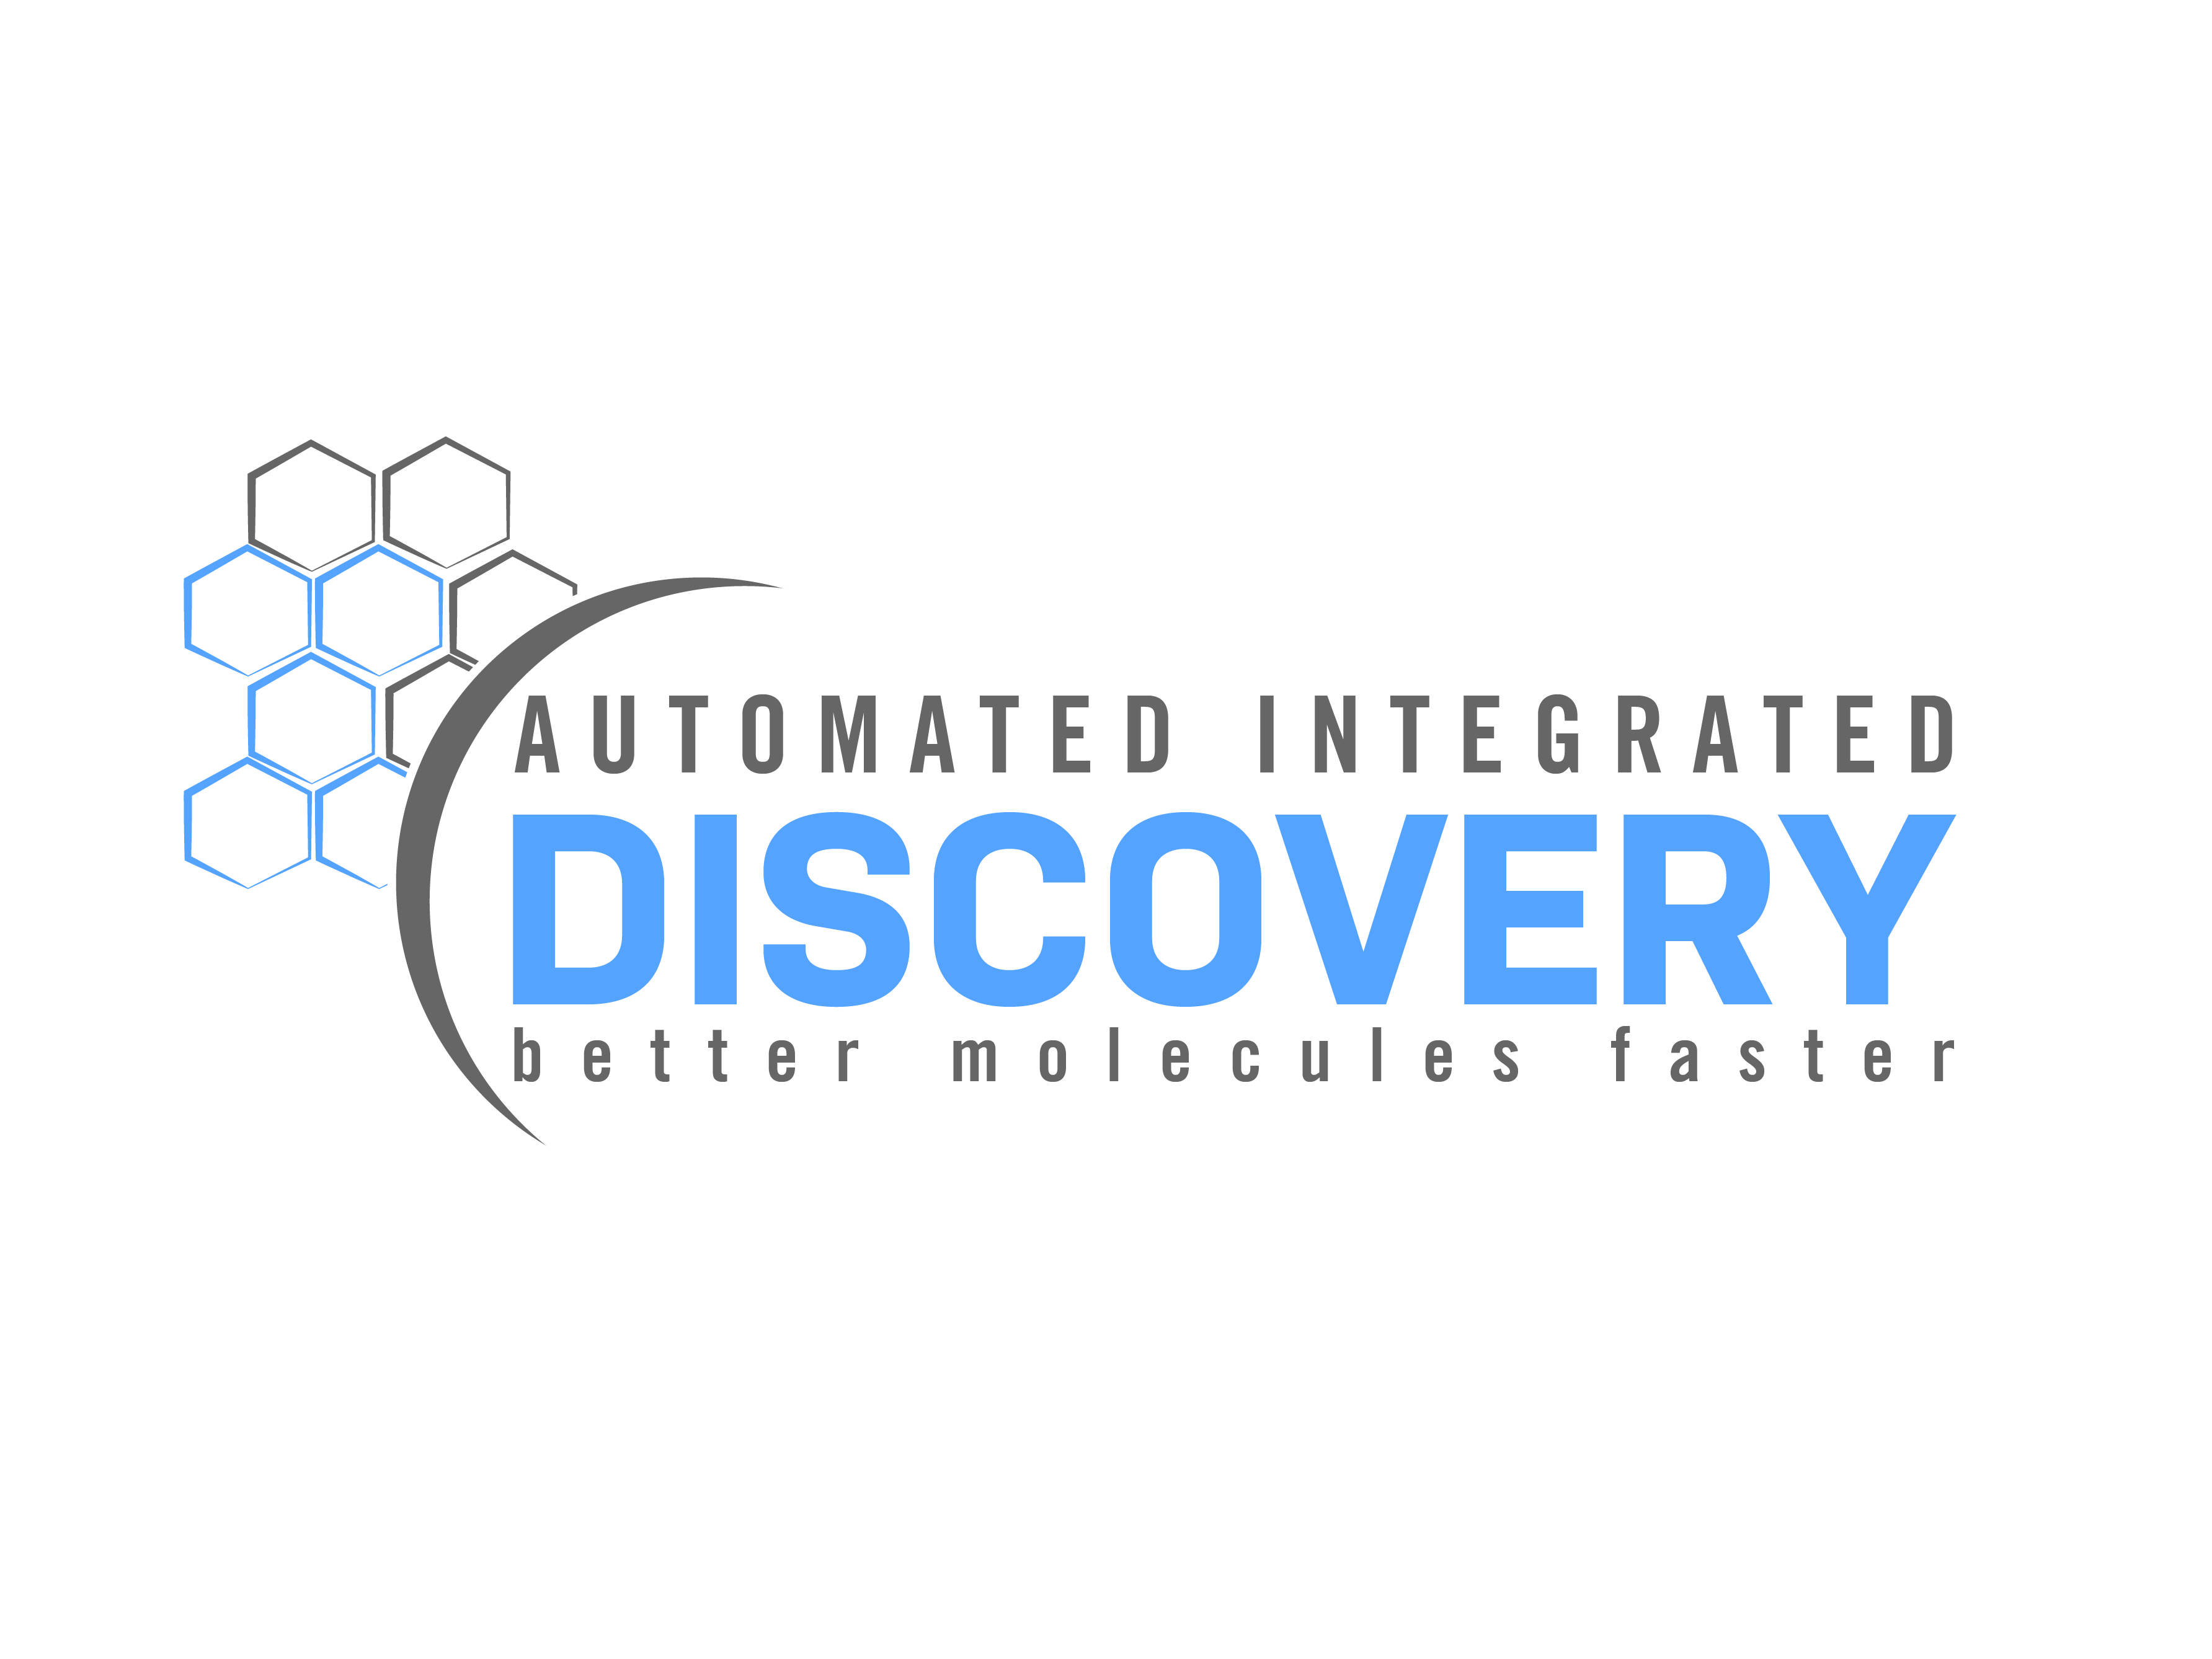 Logo Design by Rob King - Entry No. 67 in the Logo Design Contest Automated Integrated Discovery  Logo Design.